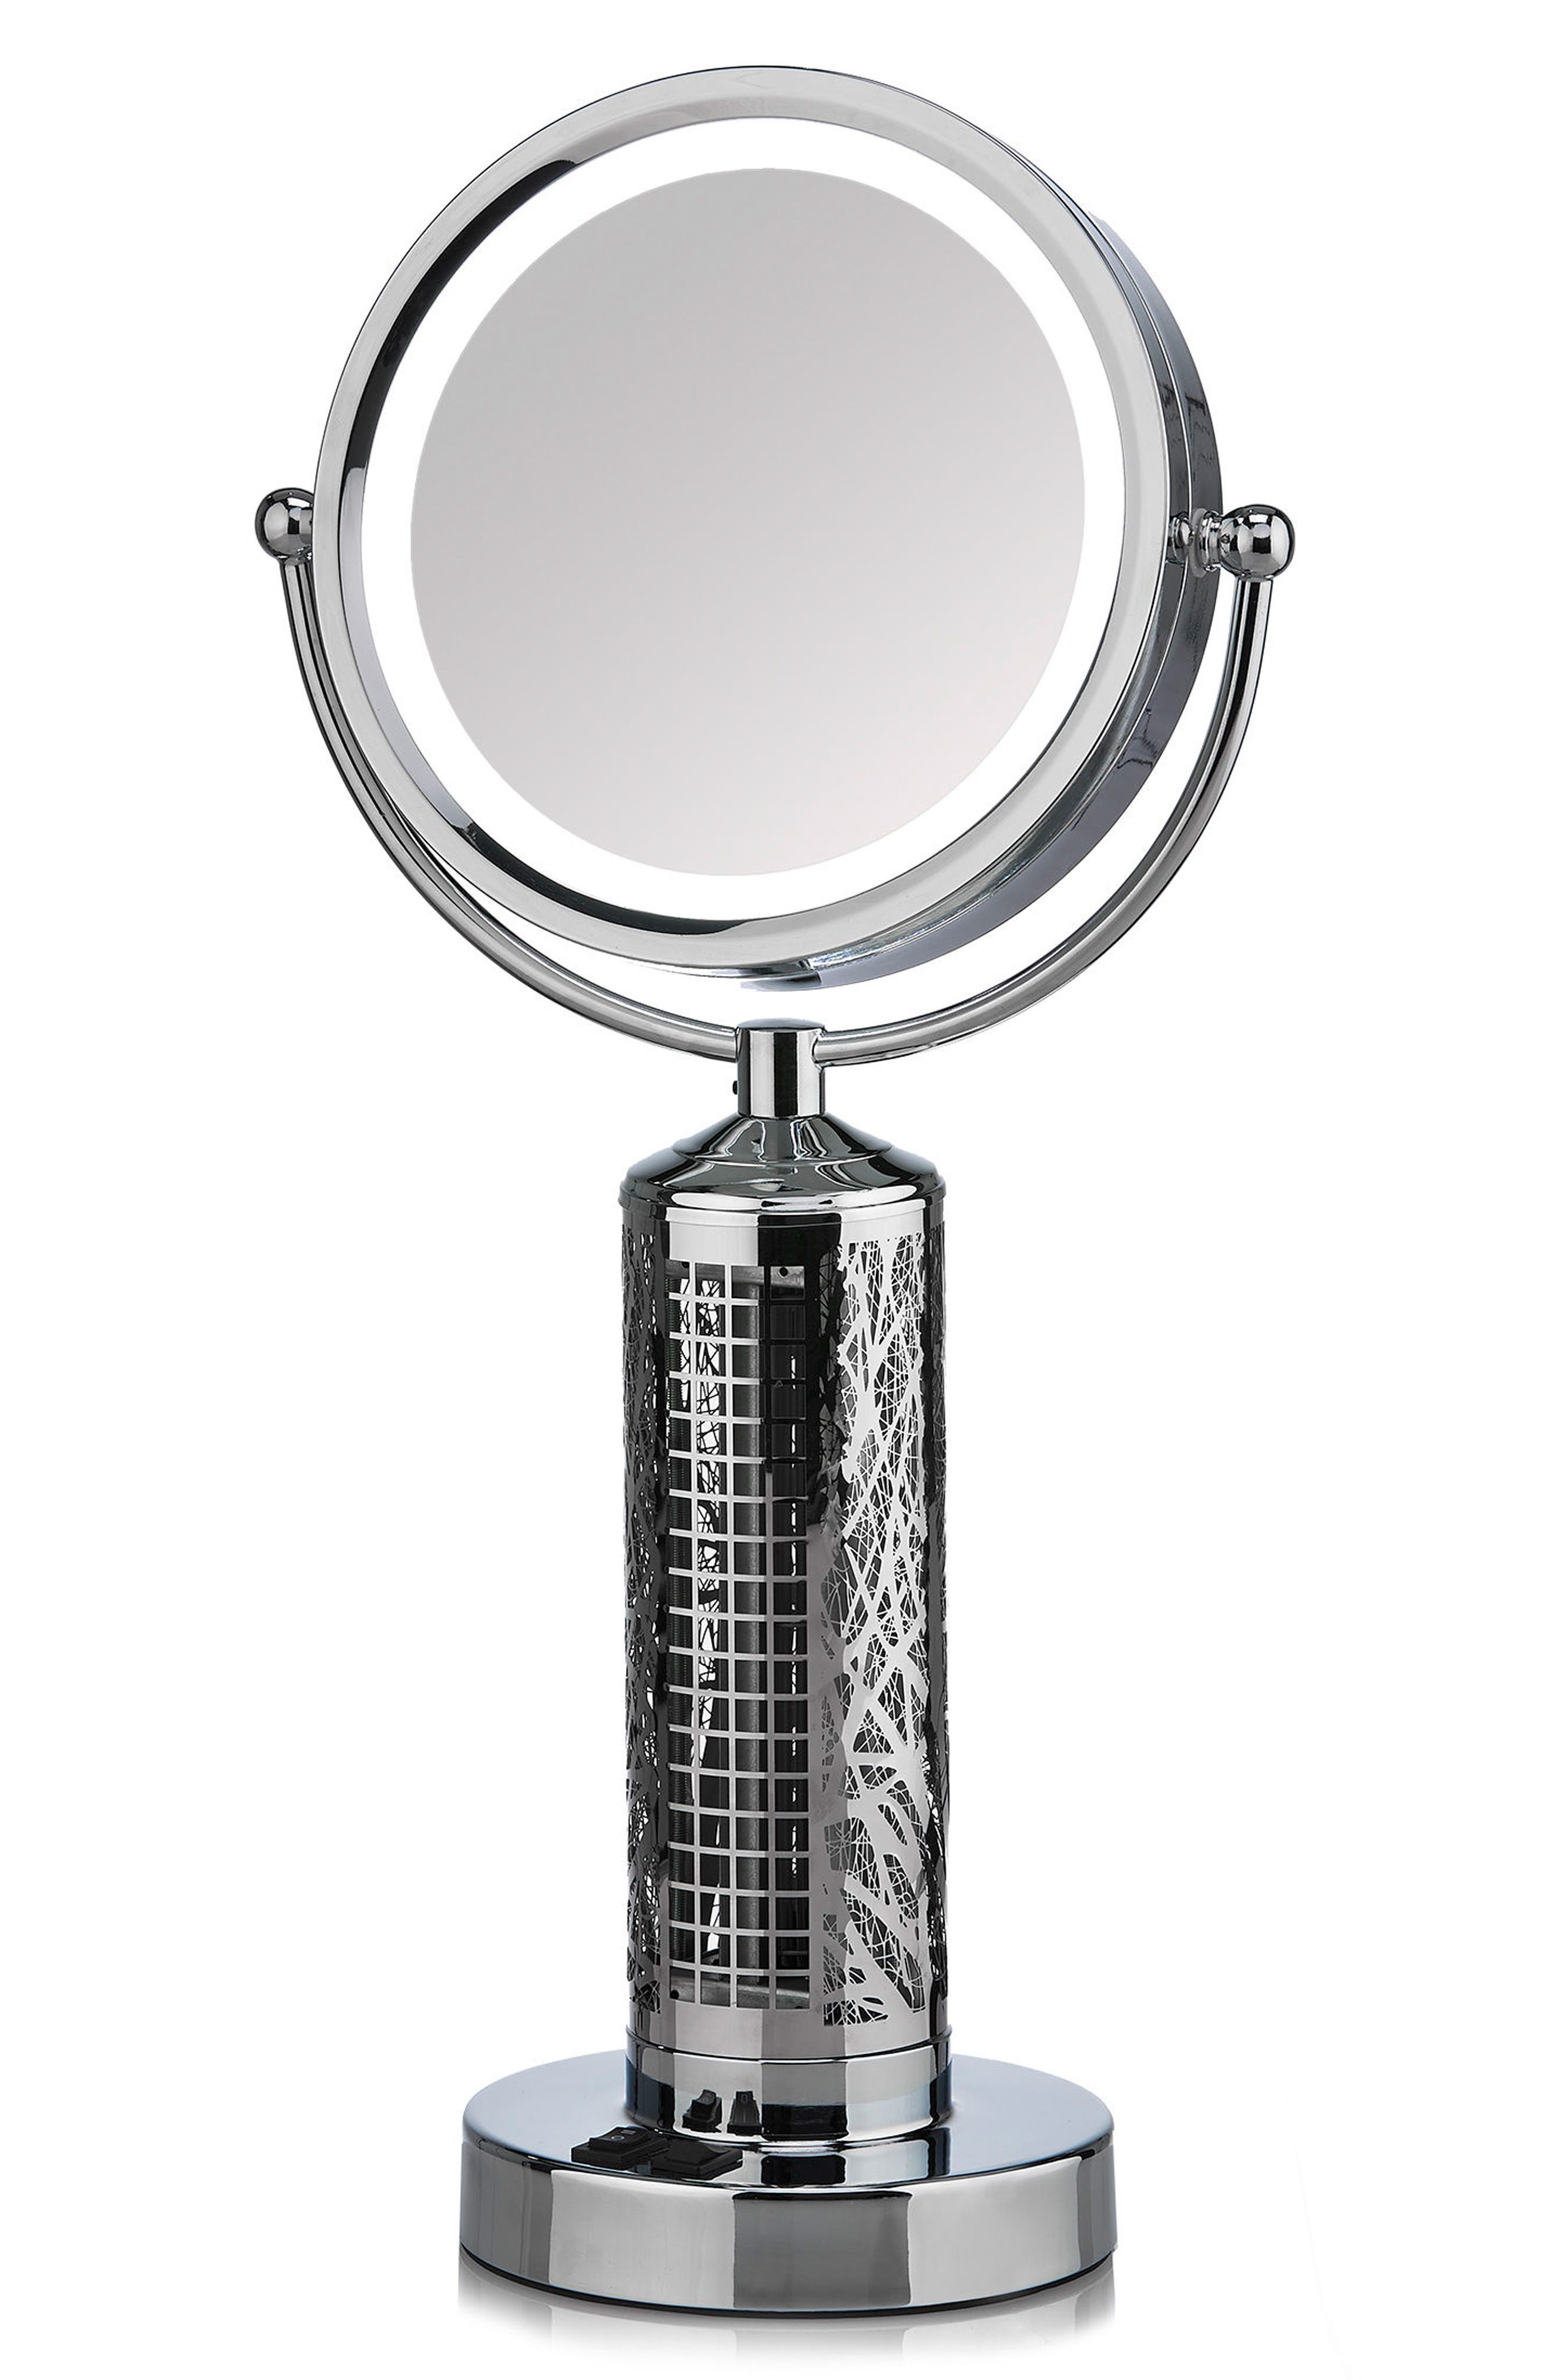 Fanity Makeup Mirror with Electric Fan,                         Main,                         color, Silver